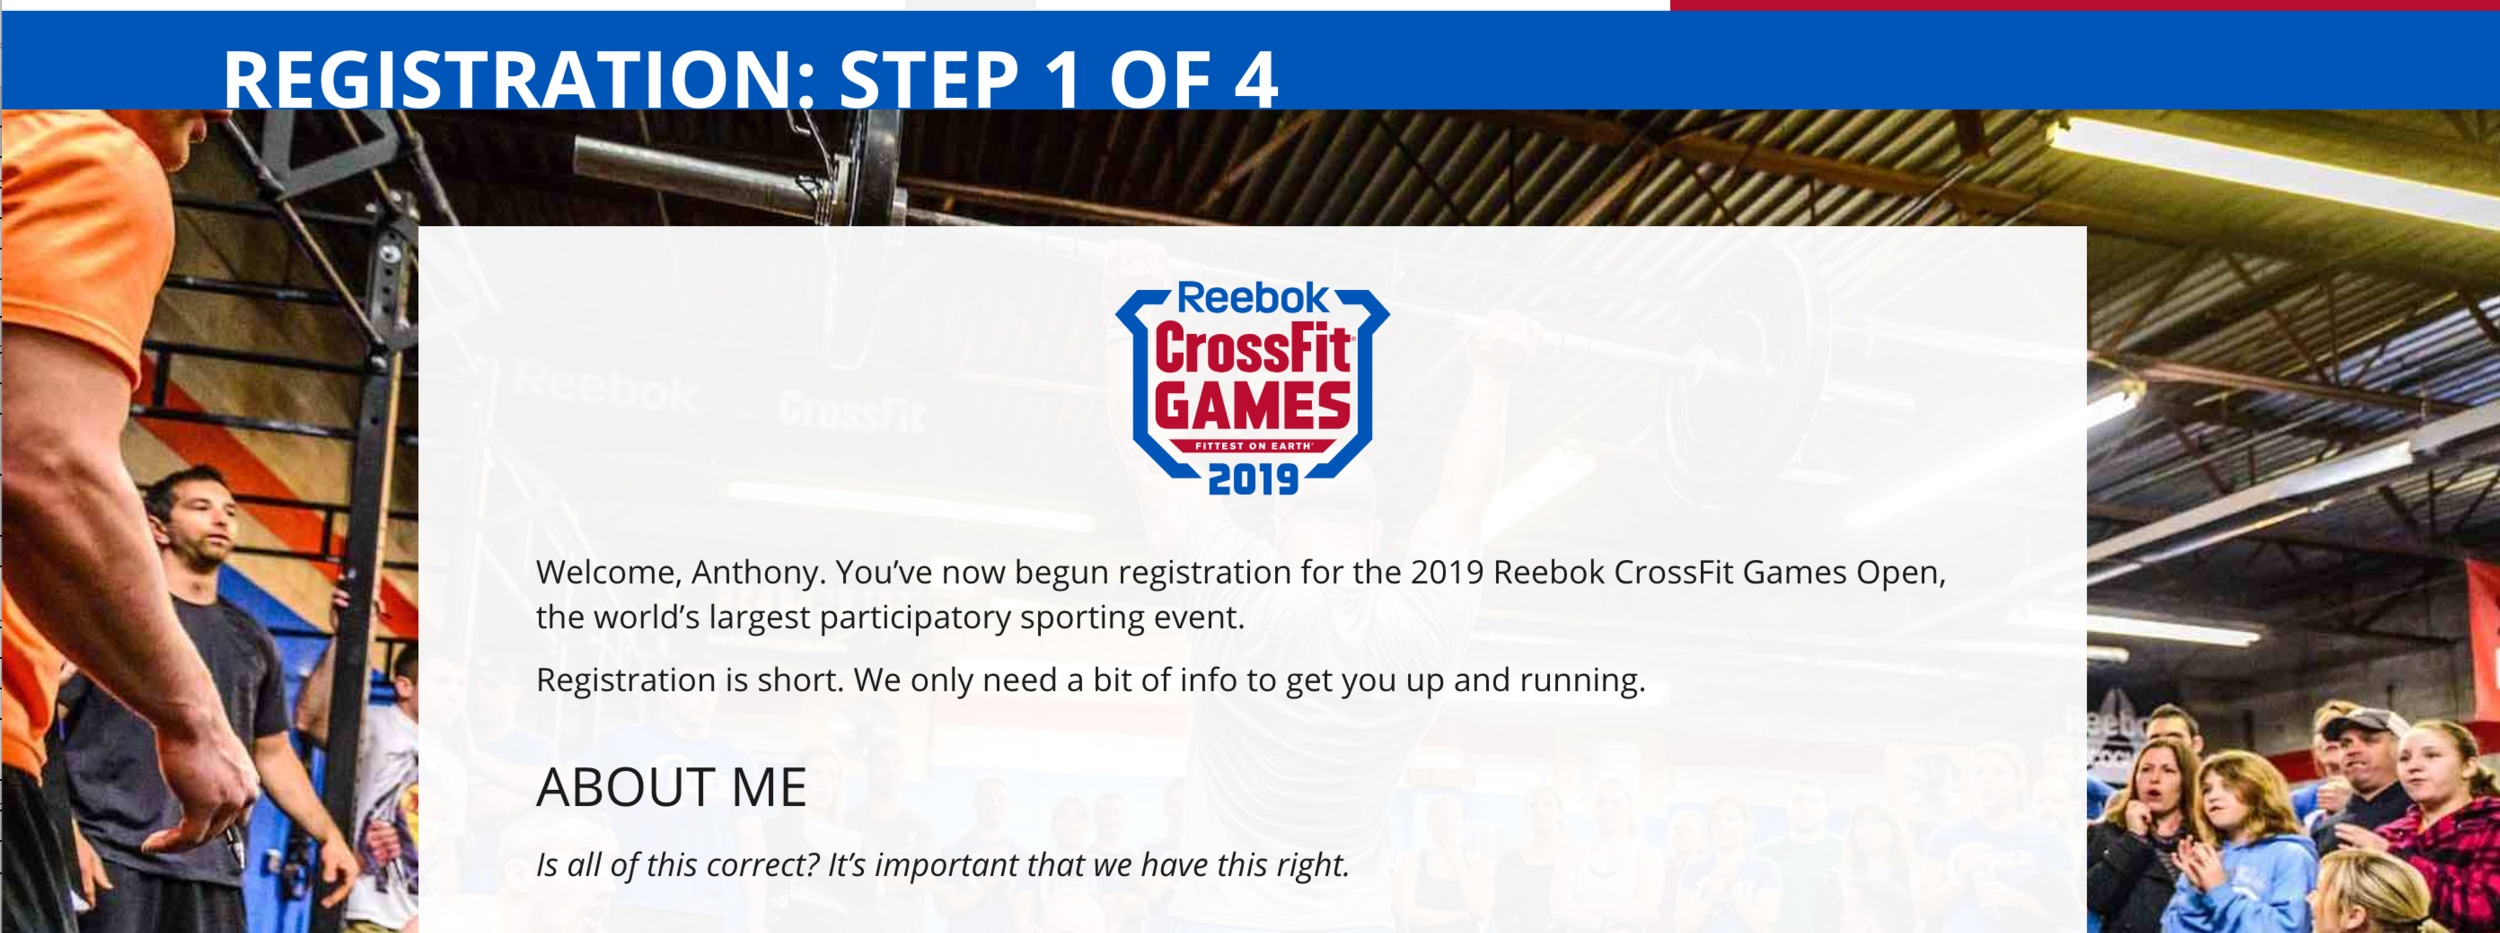 STEP TWO - Confirm your current information (if you already had a profile) or fill out your new information. You will choose CrossFit San Rafael, CrossFit Mill Valley or CrossFit Corte Madera.Under the hashtag box add tjsgymsanrafael, tjsgymmillvalley, or tjsgymcortemadera, depending on the team you will represent.